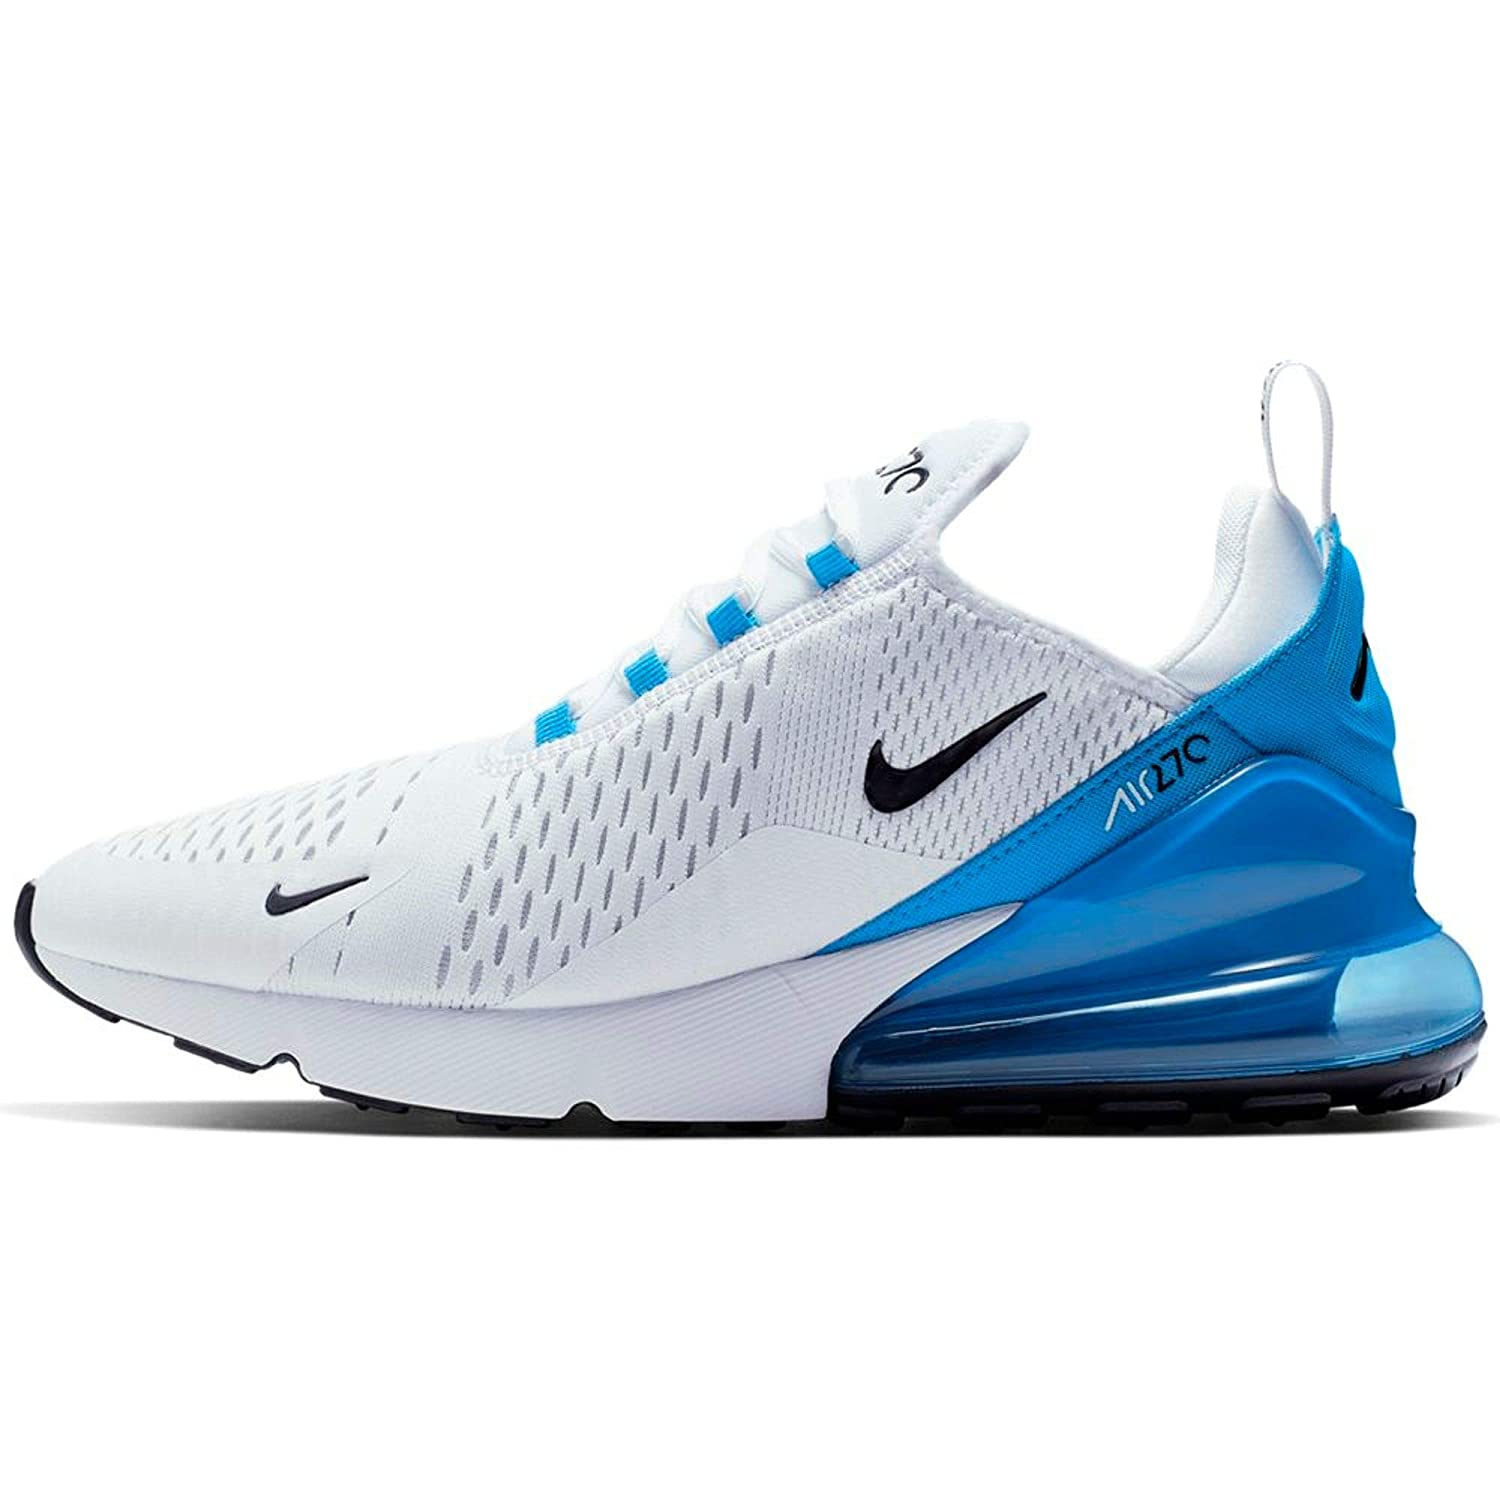 Nike Air Max 270 Mens Sneakers AH8050,110, White/Black,Photo Blue,Pure  Platinum, Size US 10.5